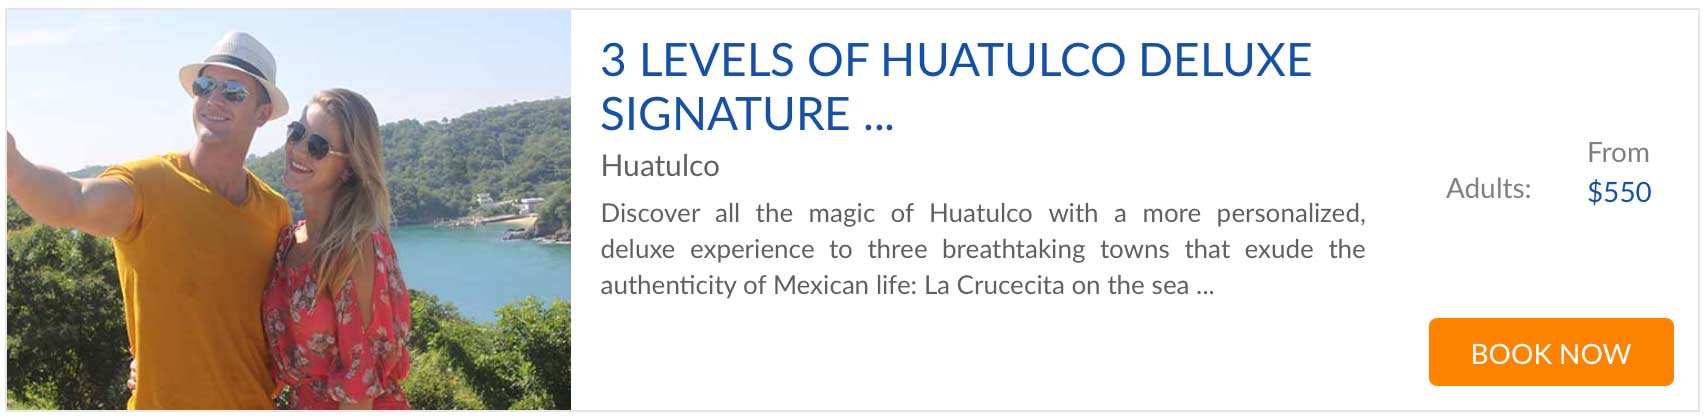 levels of Huatulco signature experience